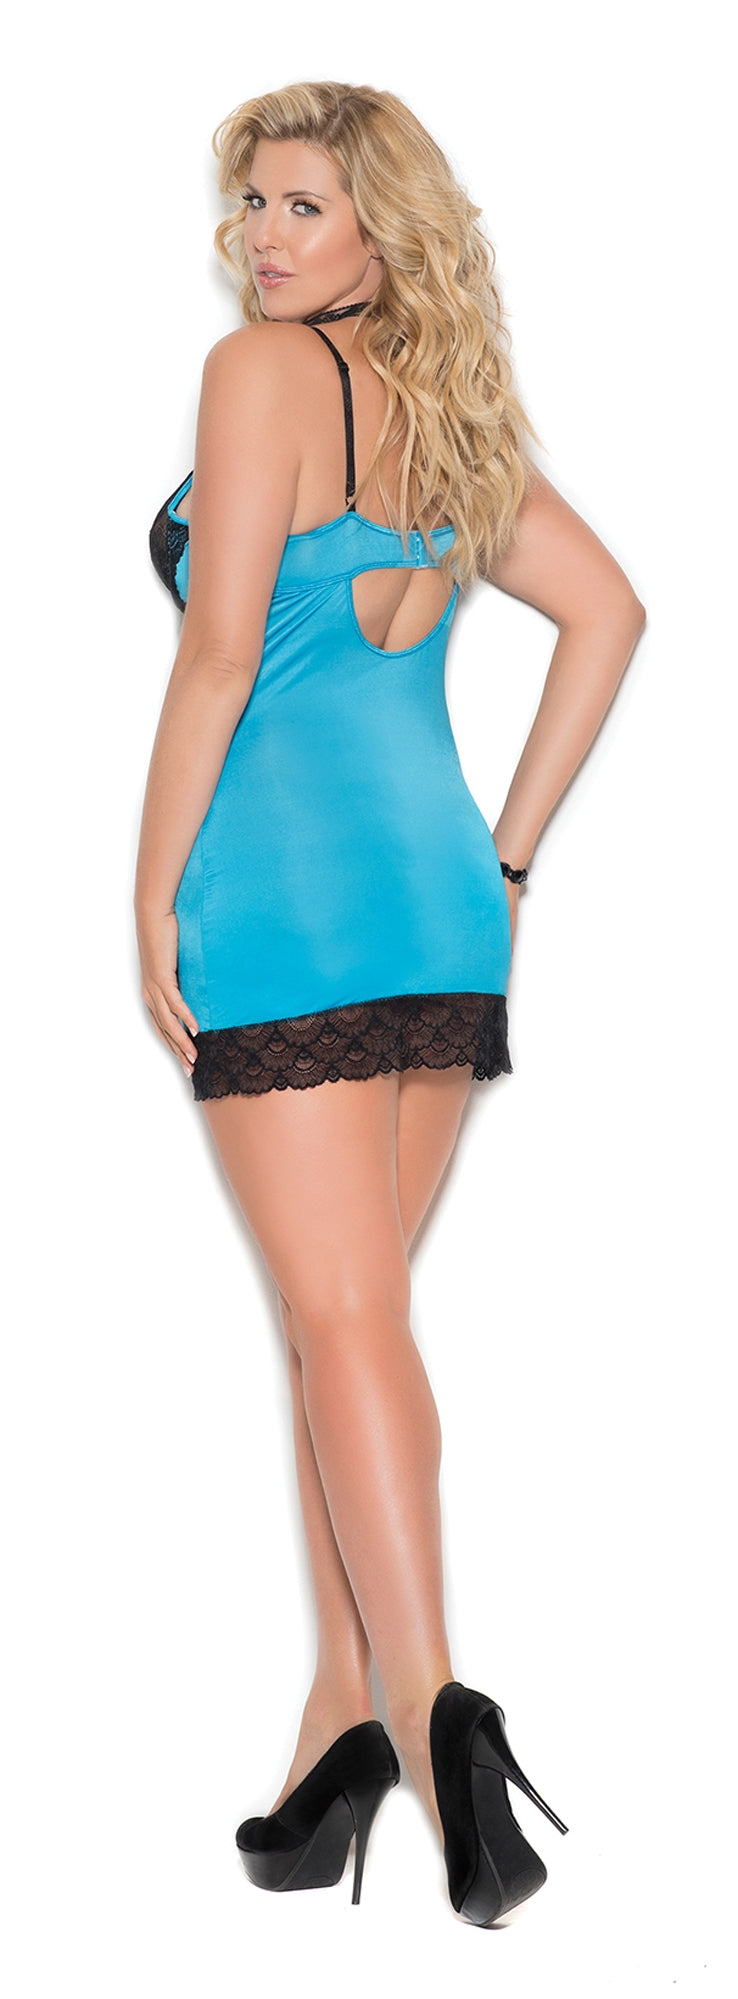 EM-4355 Satin chemise with lace underwire cups plus back